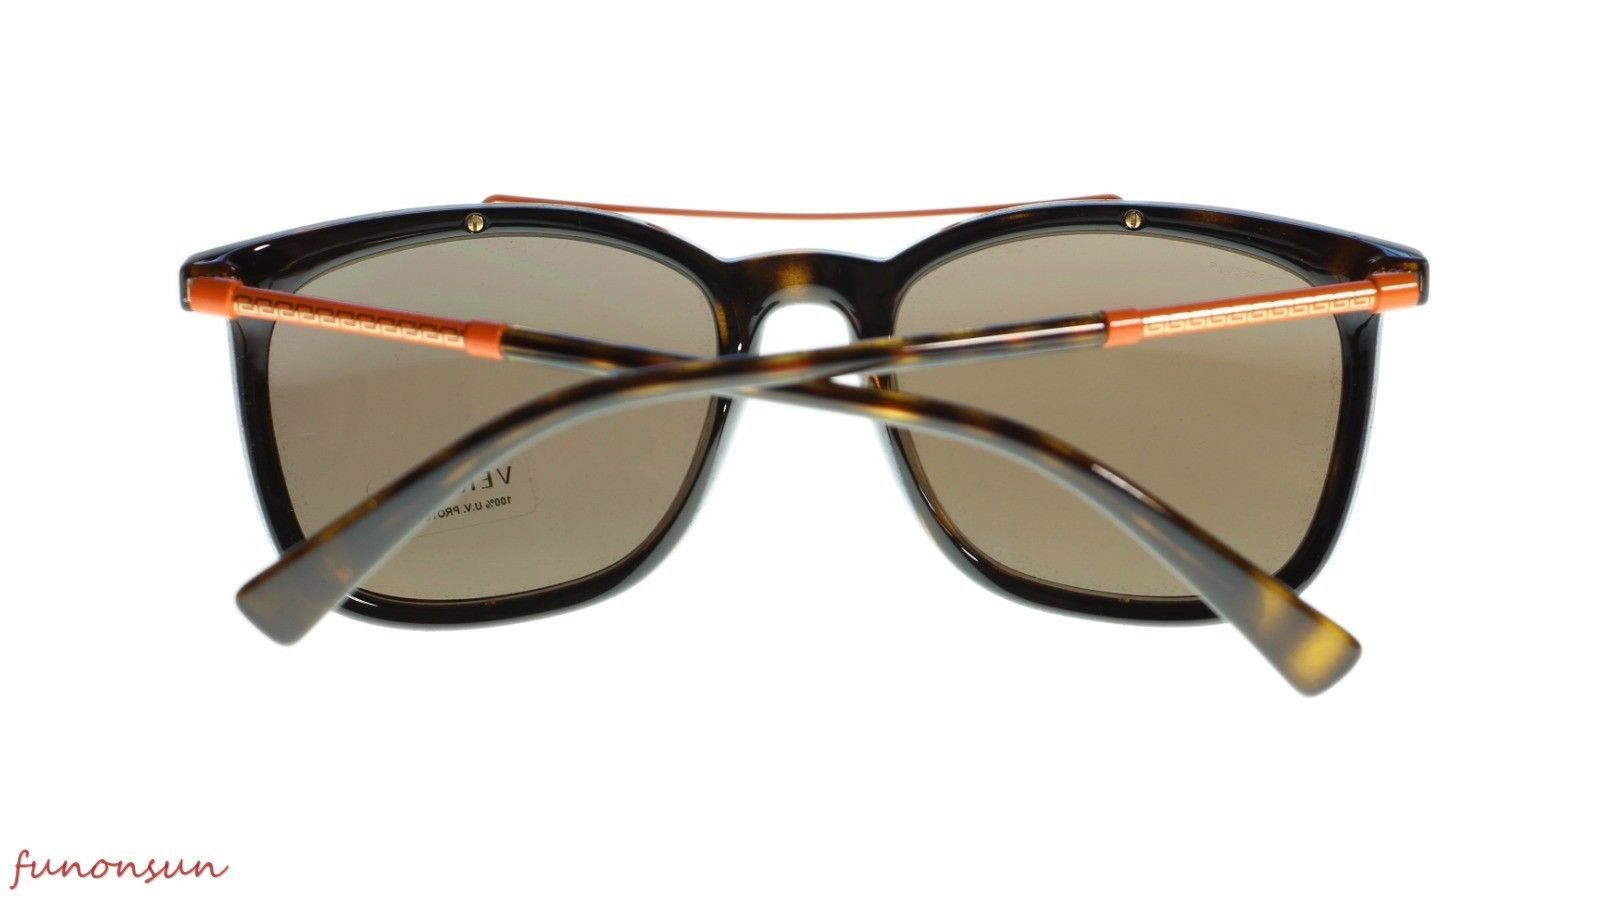 2ee7963ca04ba Versace Men s Square Sunglasses VE4335 10873 Havana Brown Lens 56mm